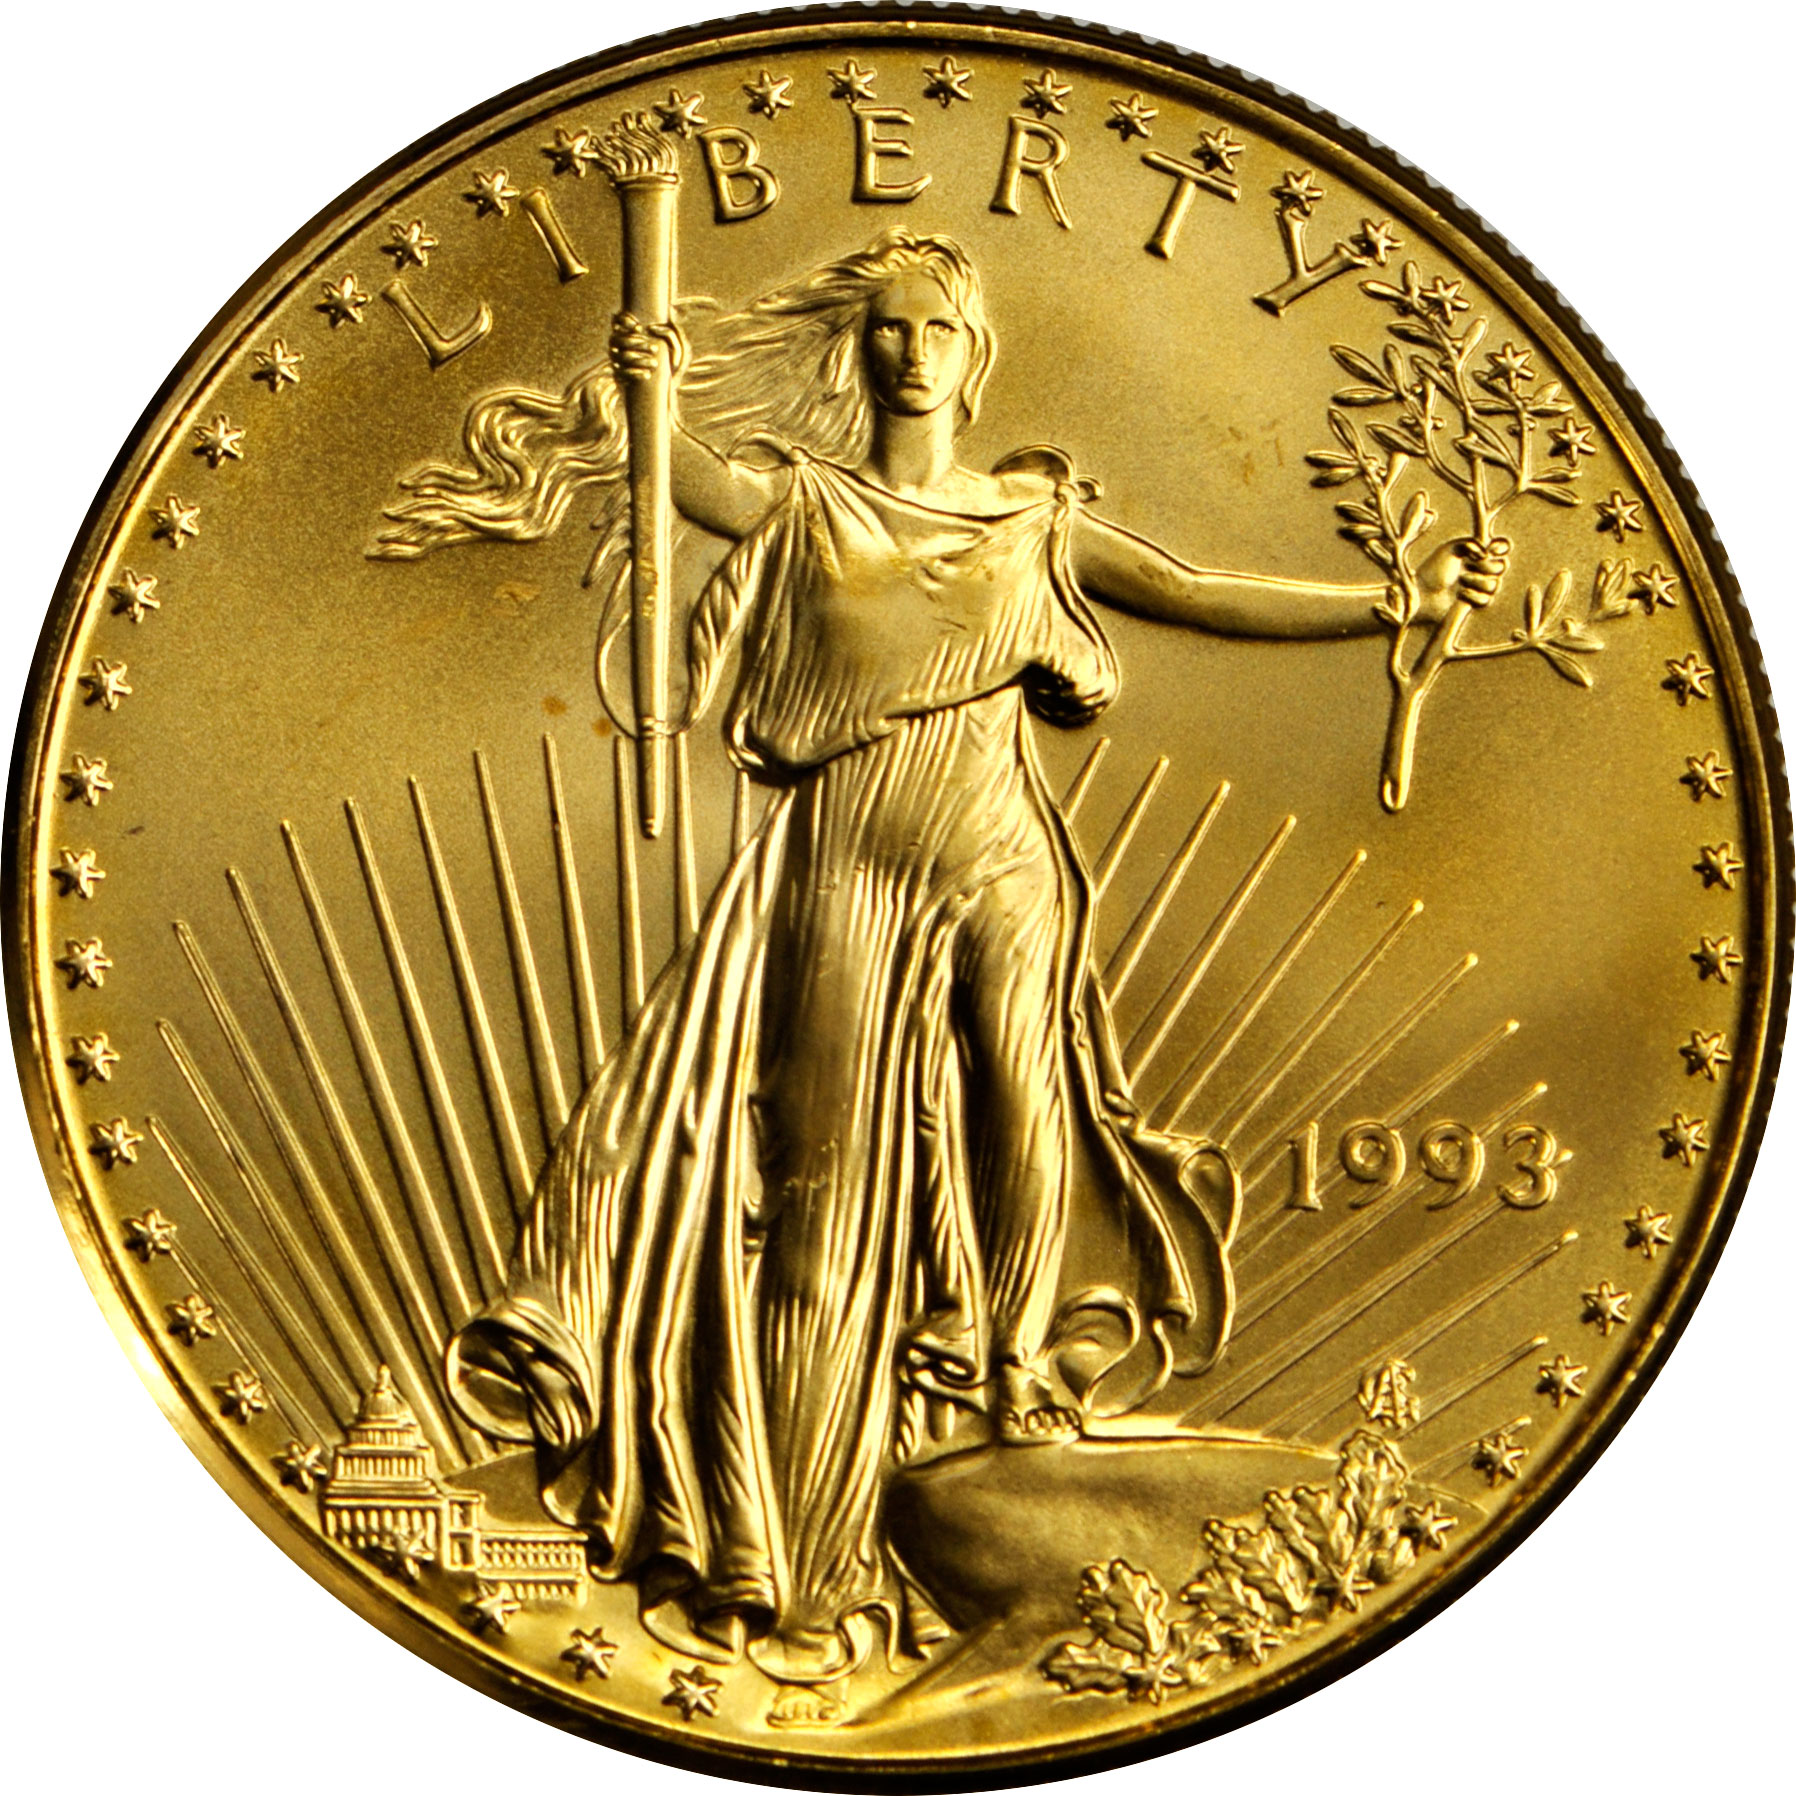 Value Of 1993 5 American Gold Eagle Coin